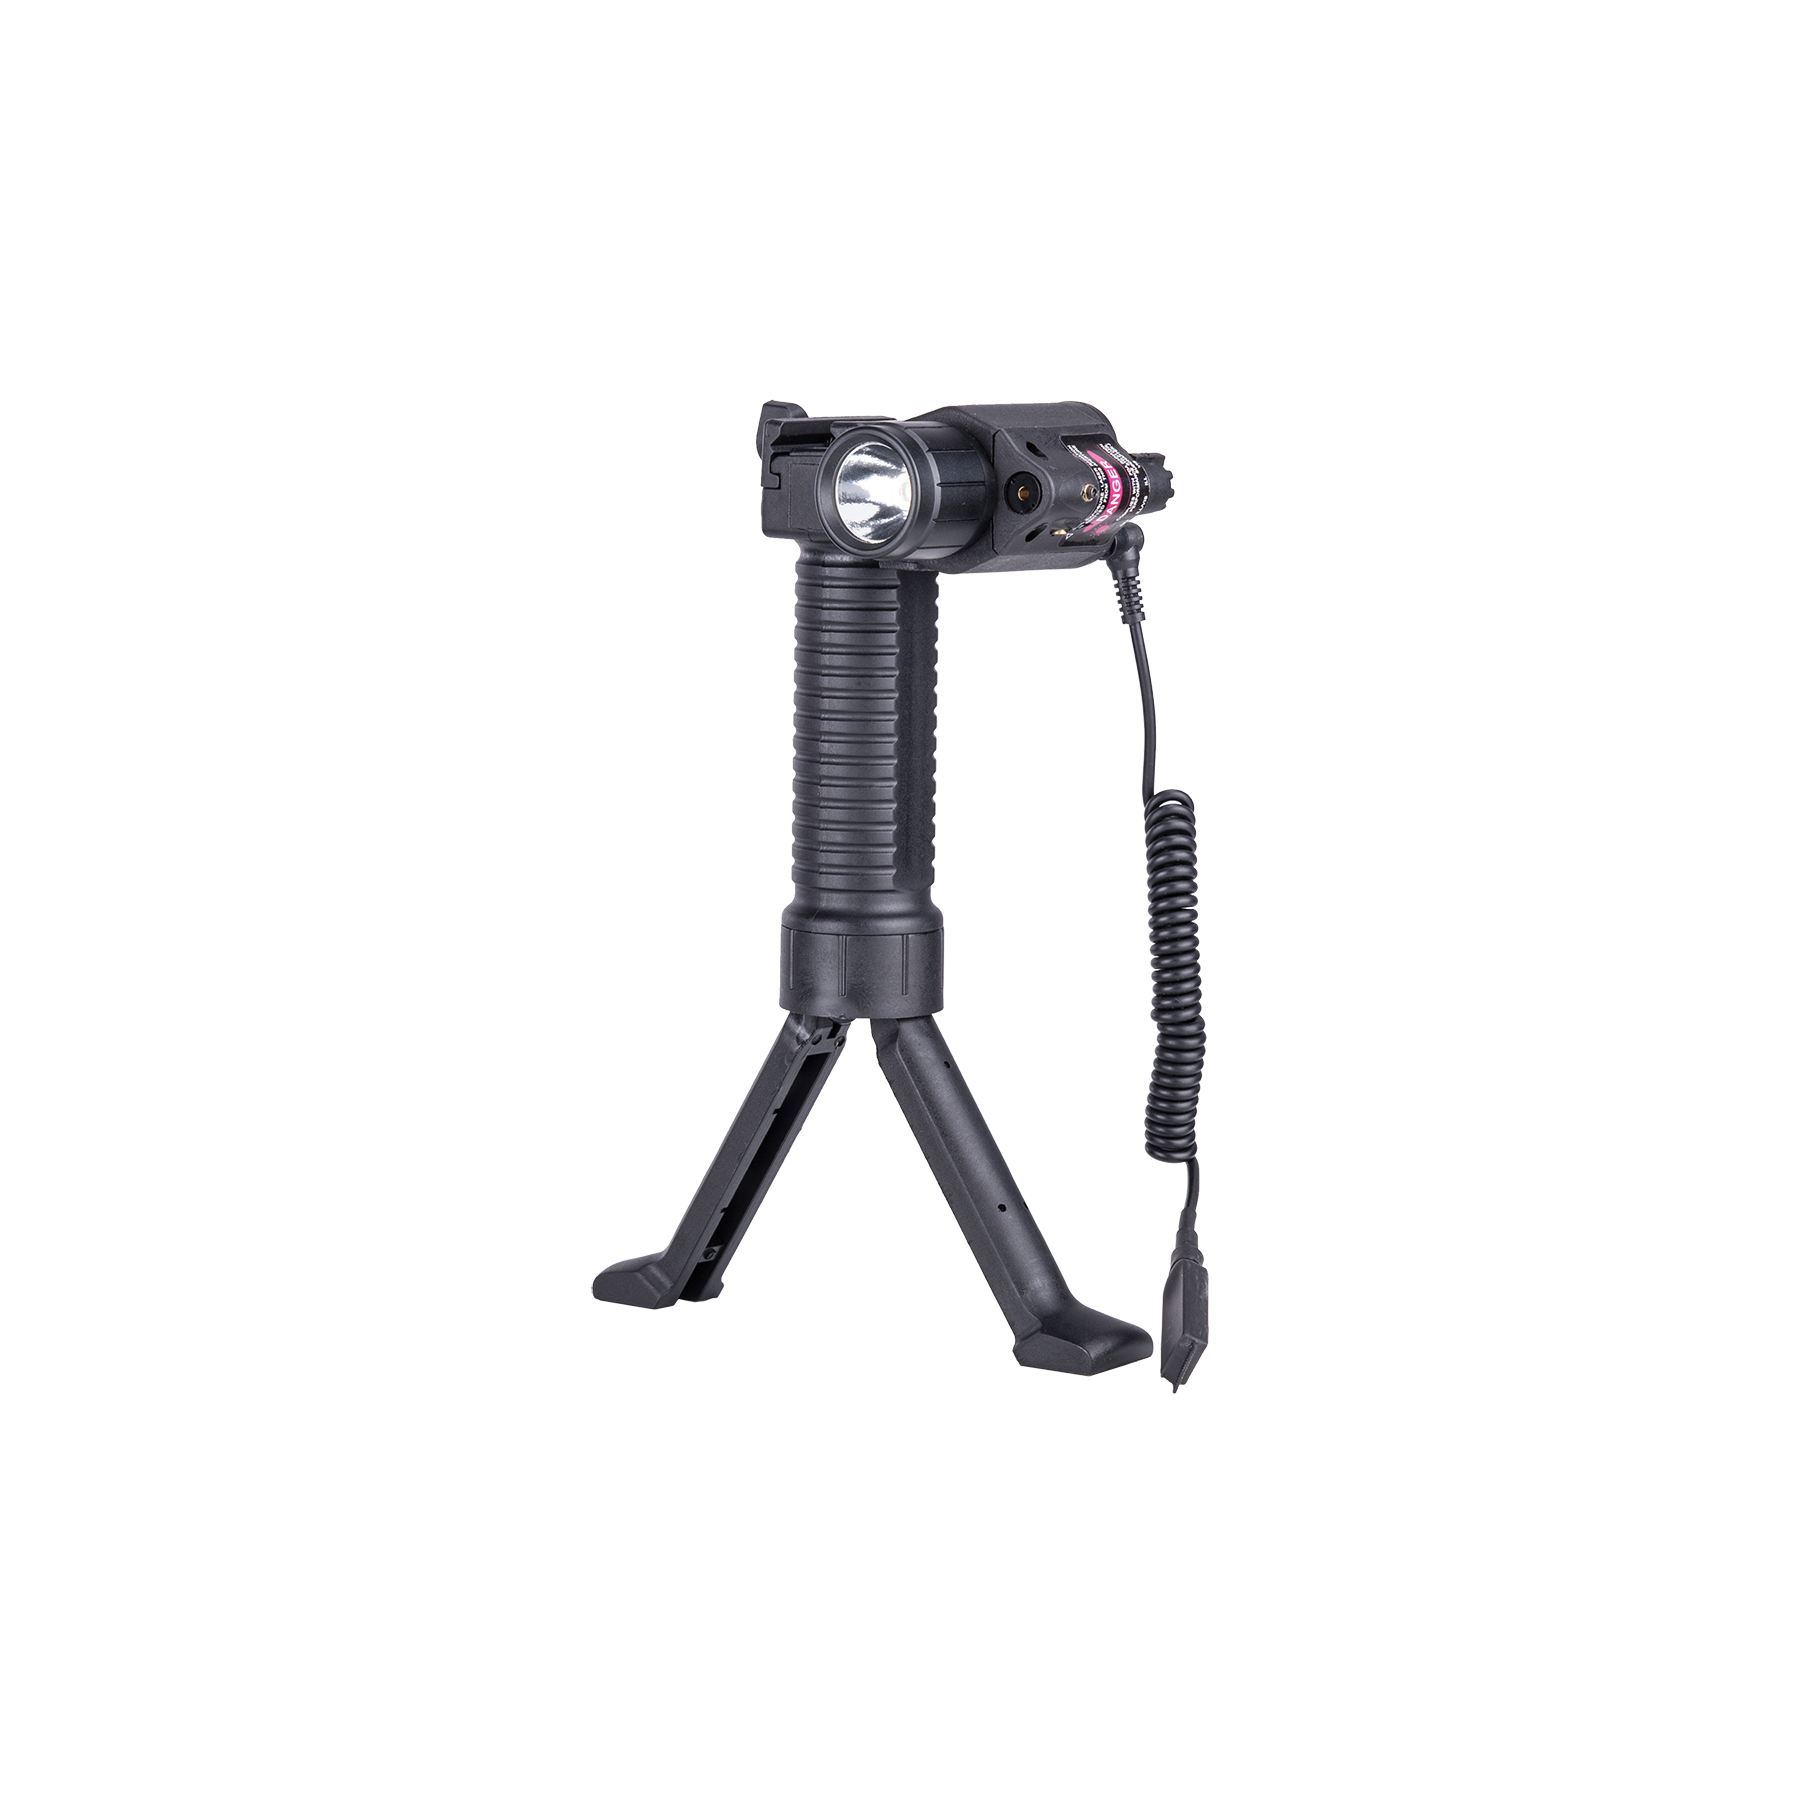 Tacticalred Laser Sight Amp Rifle Foldable Foregrip Bipod W